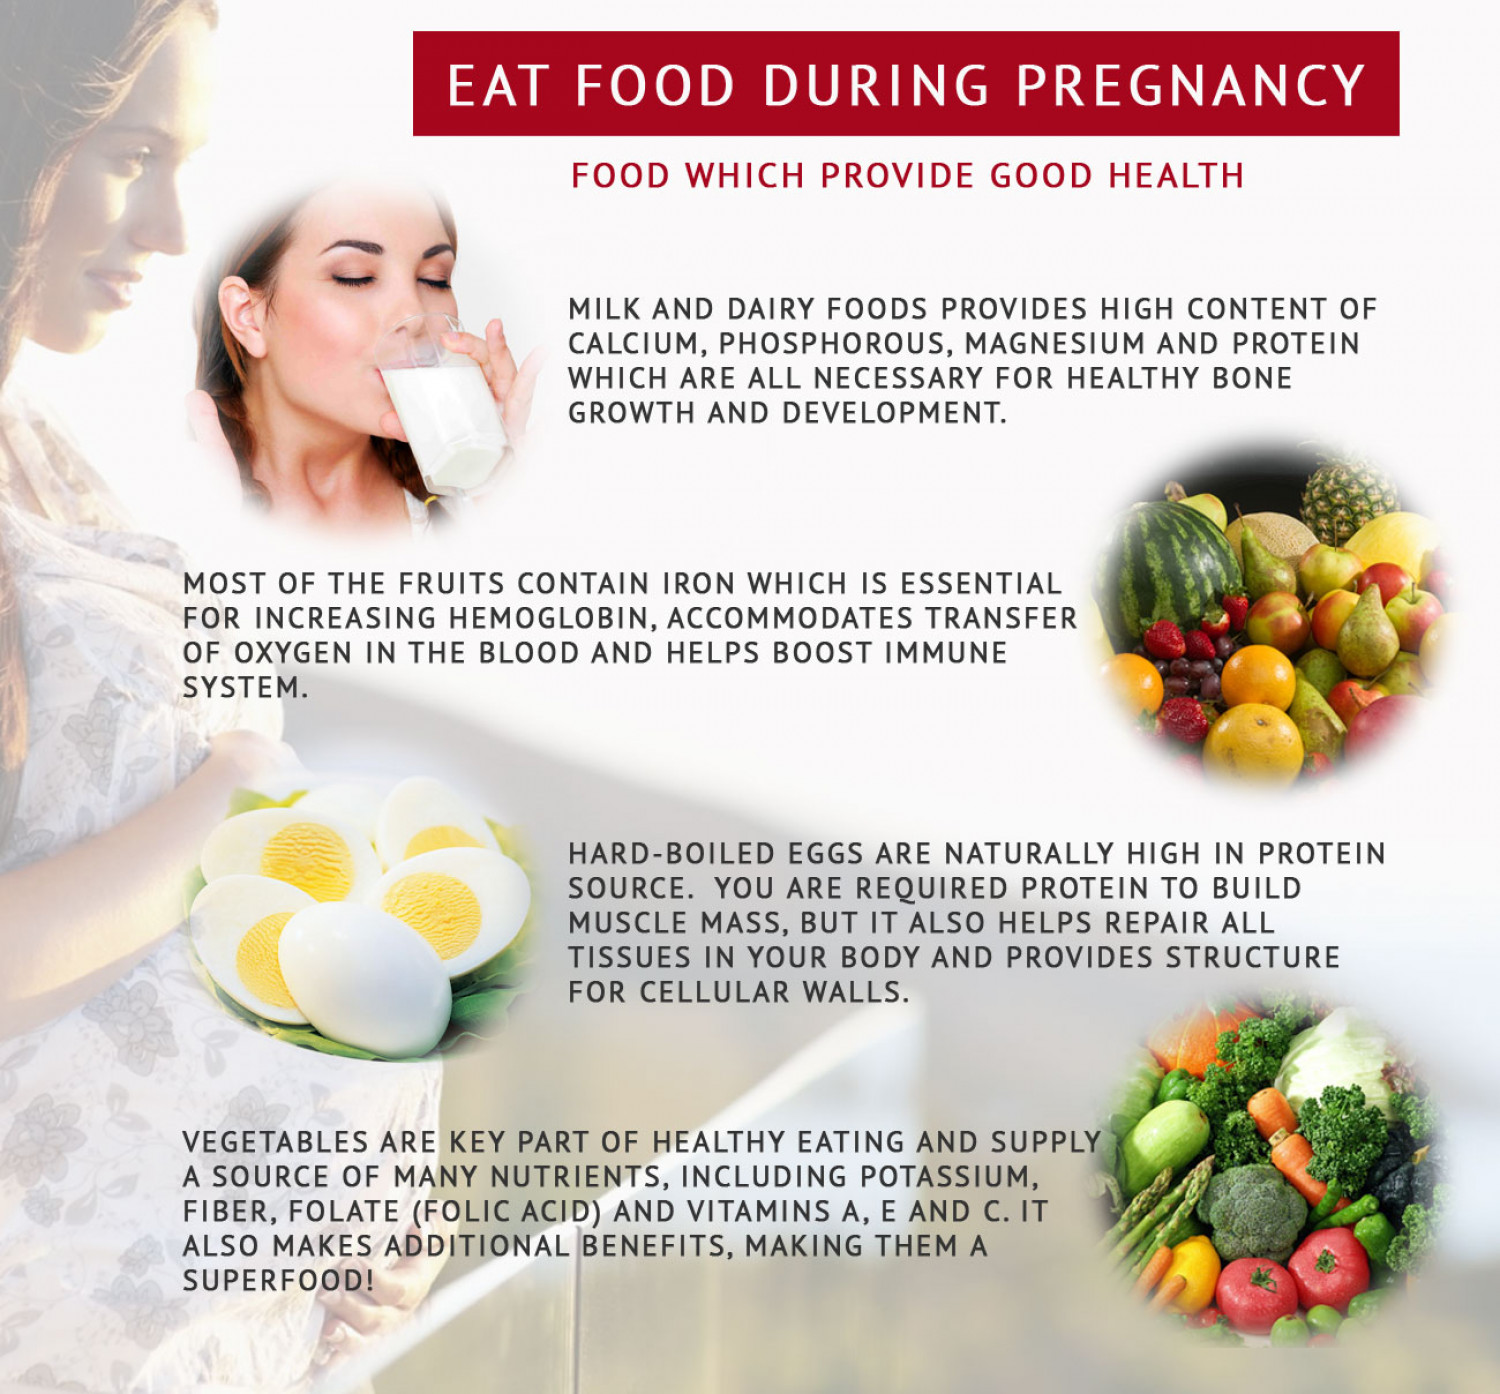 Eat food during pregnancy Infographic